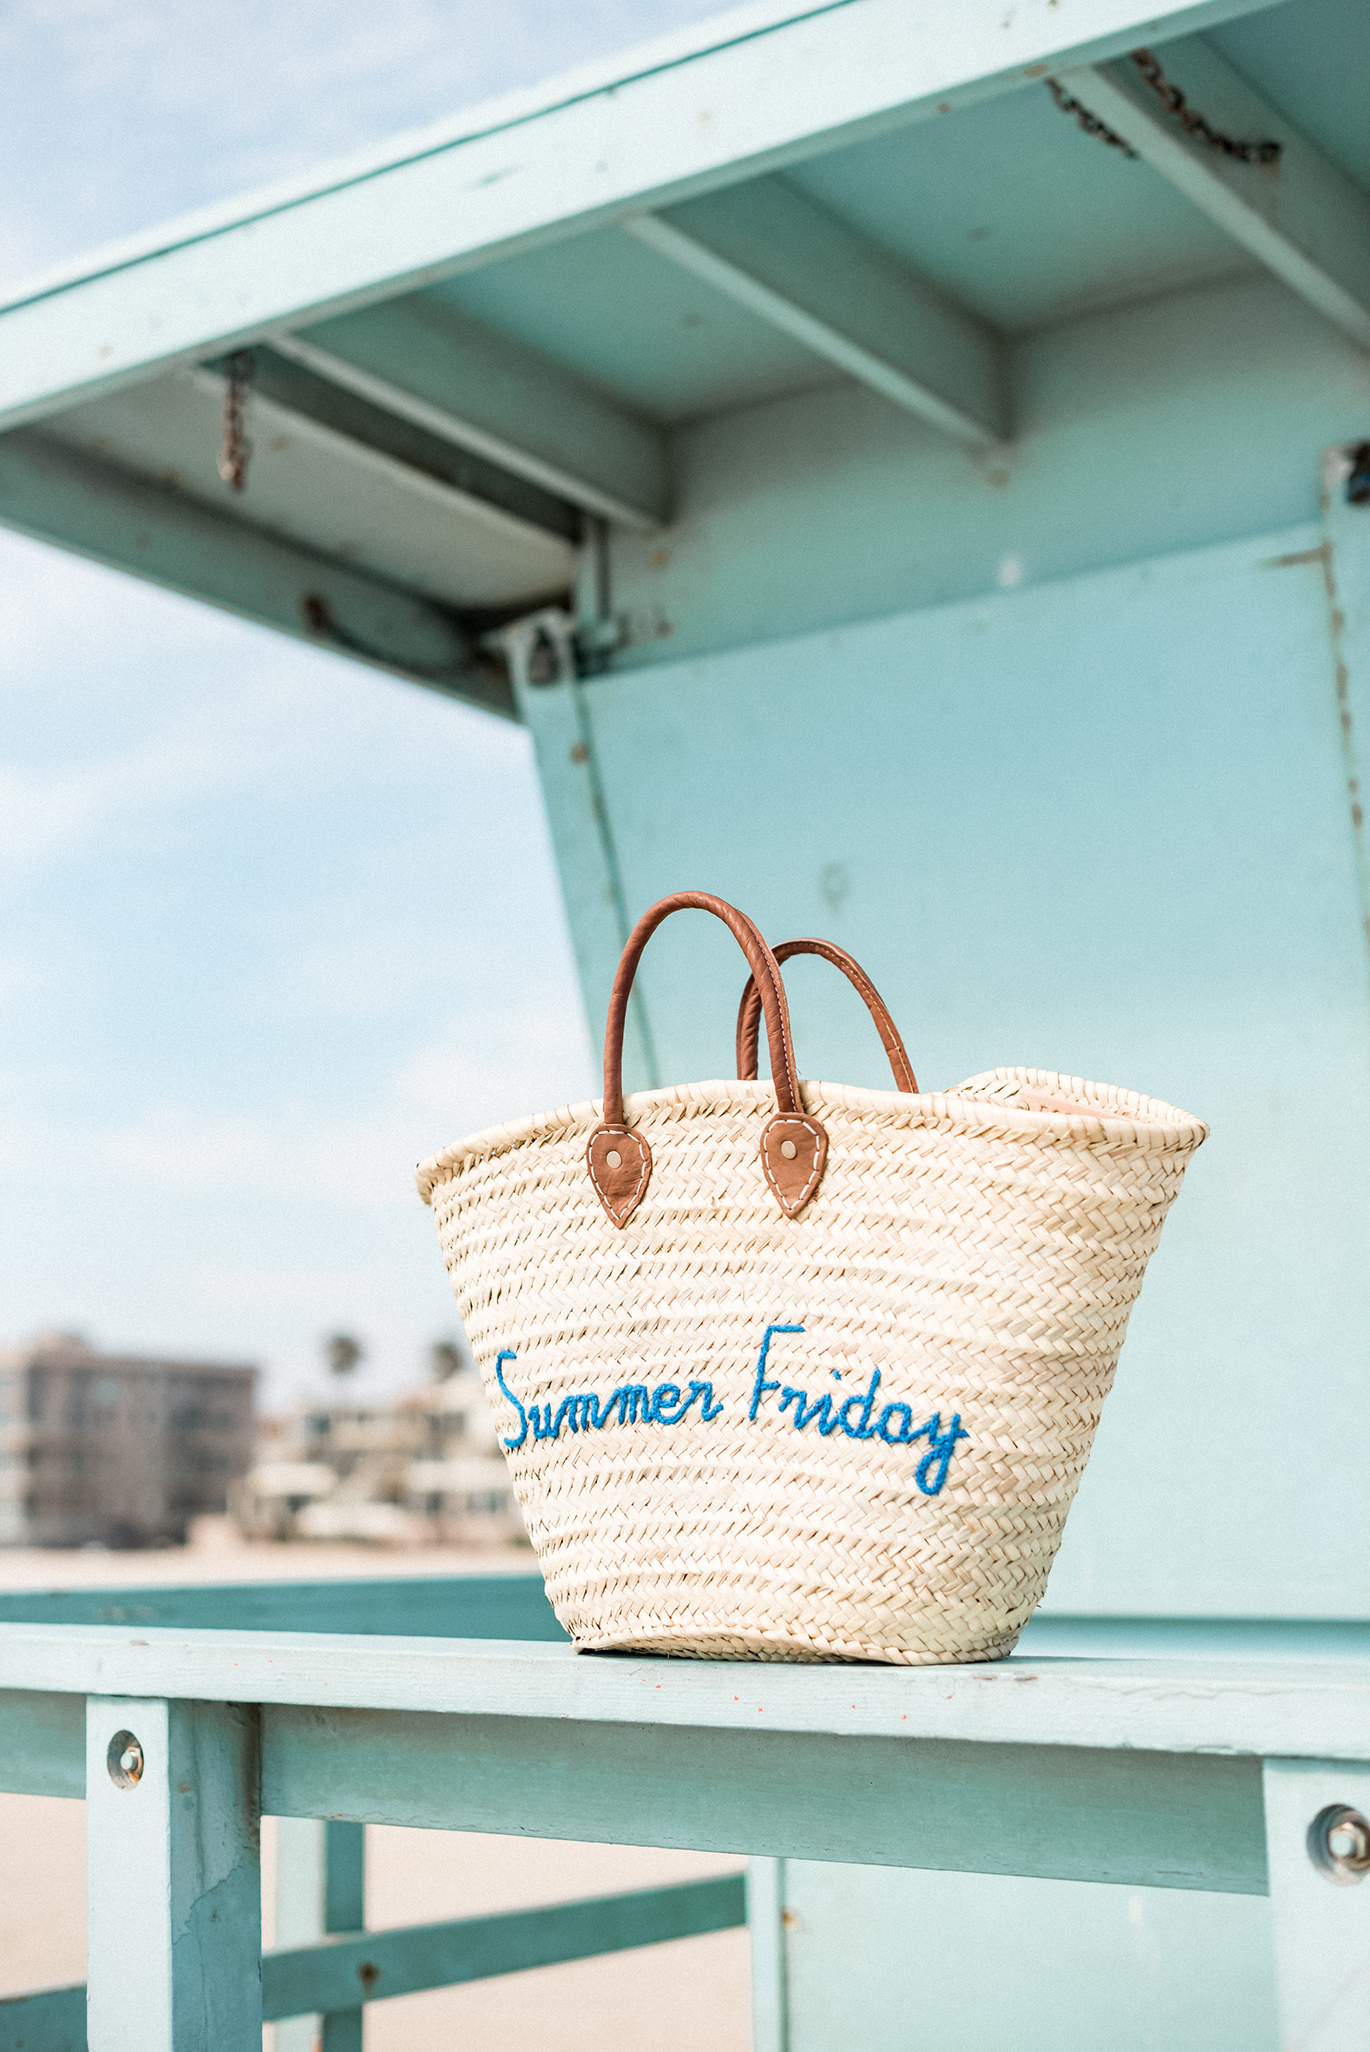 Poolside Bags straw tote